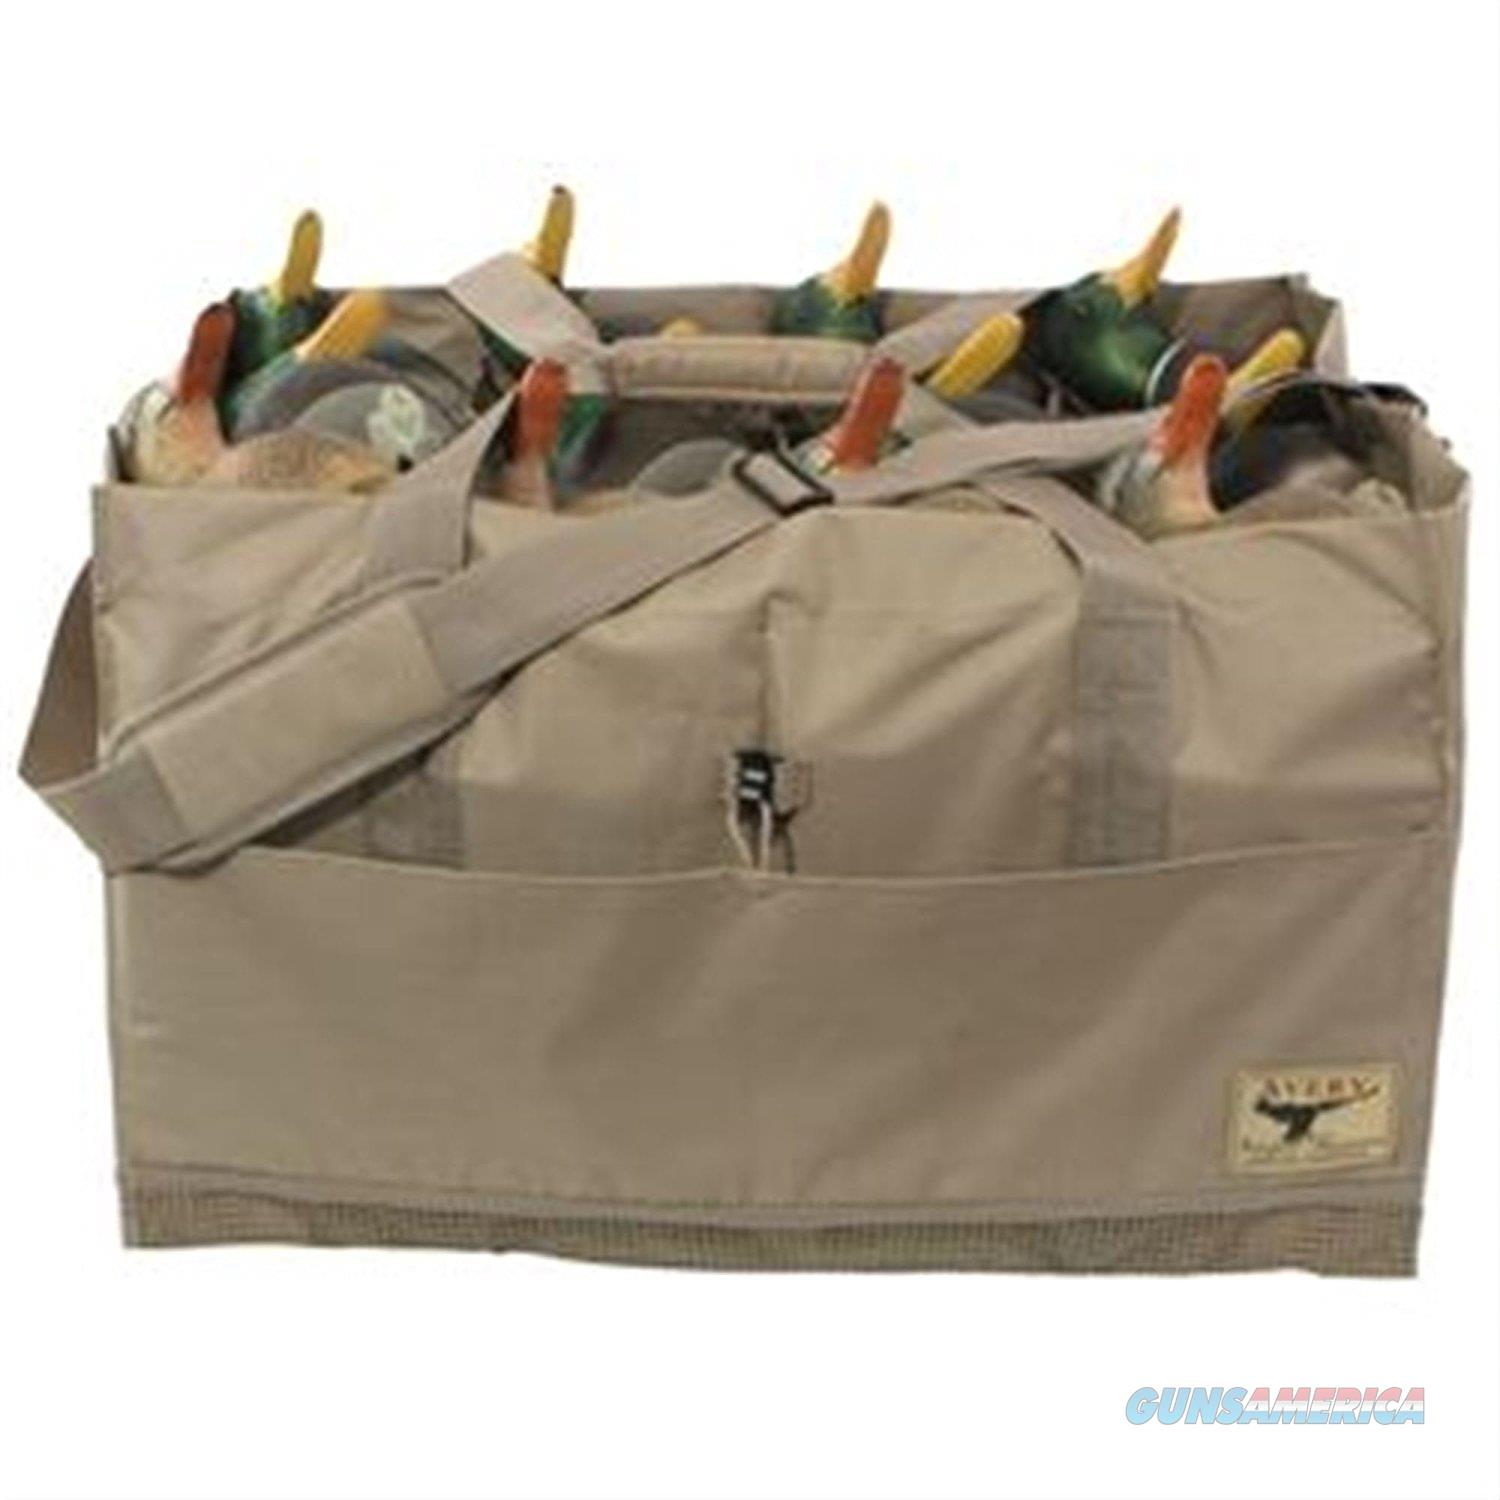 Avery 12 Slot Decoy Bag Field Khaki  Non-Guns > Hunting Clothing and Equipment > Ammo Pouches/Holders/Shell Bags